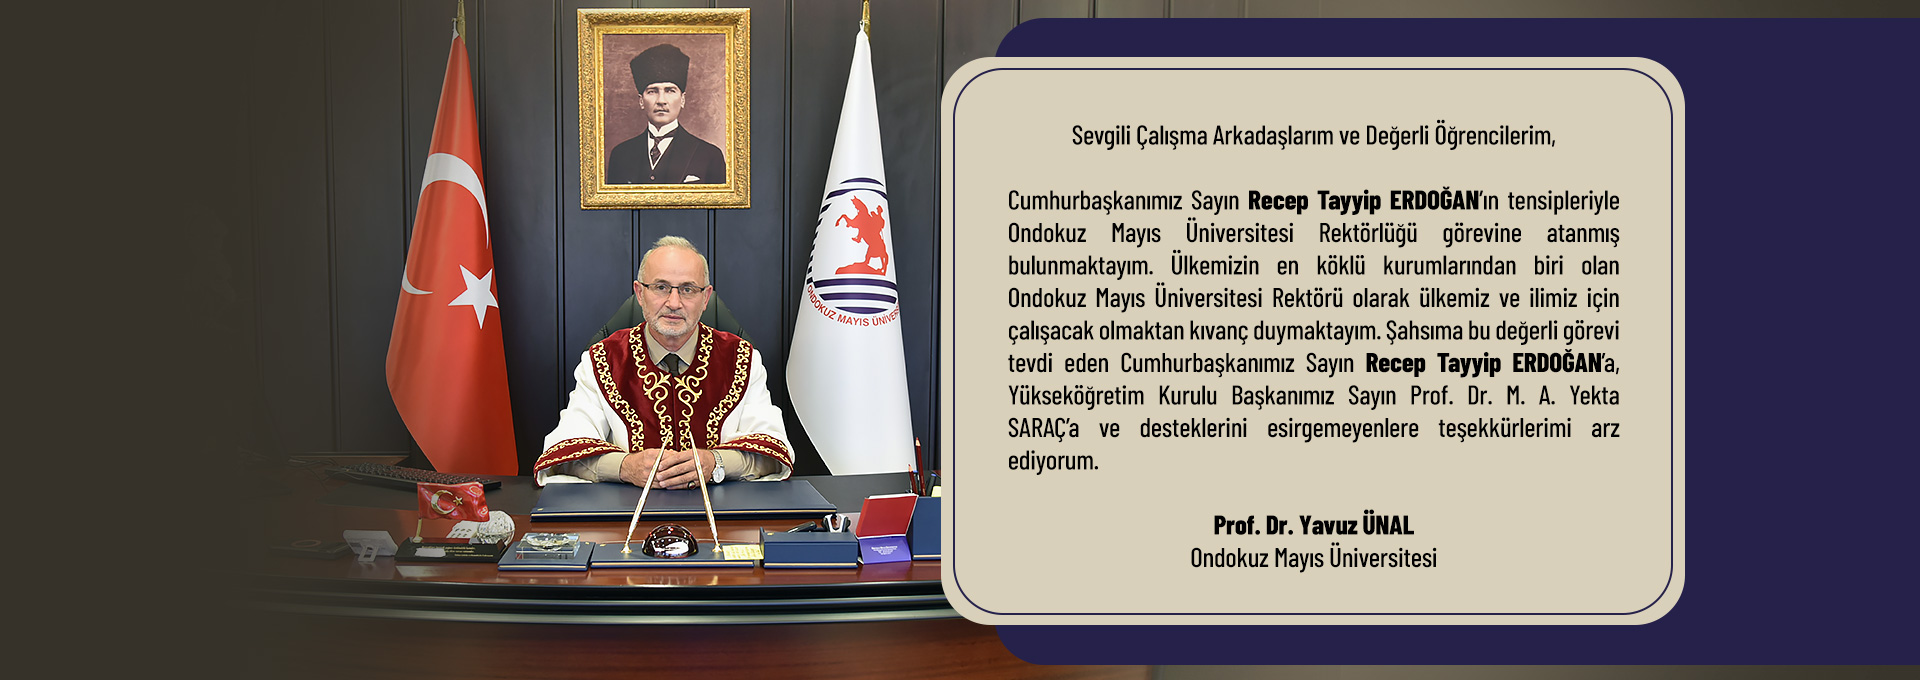 Rector Ünal's Appreciation Message